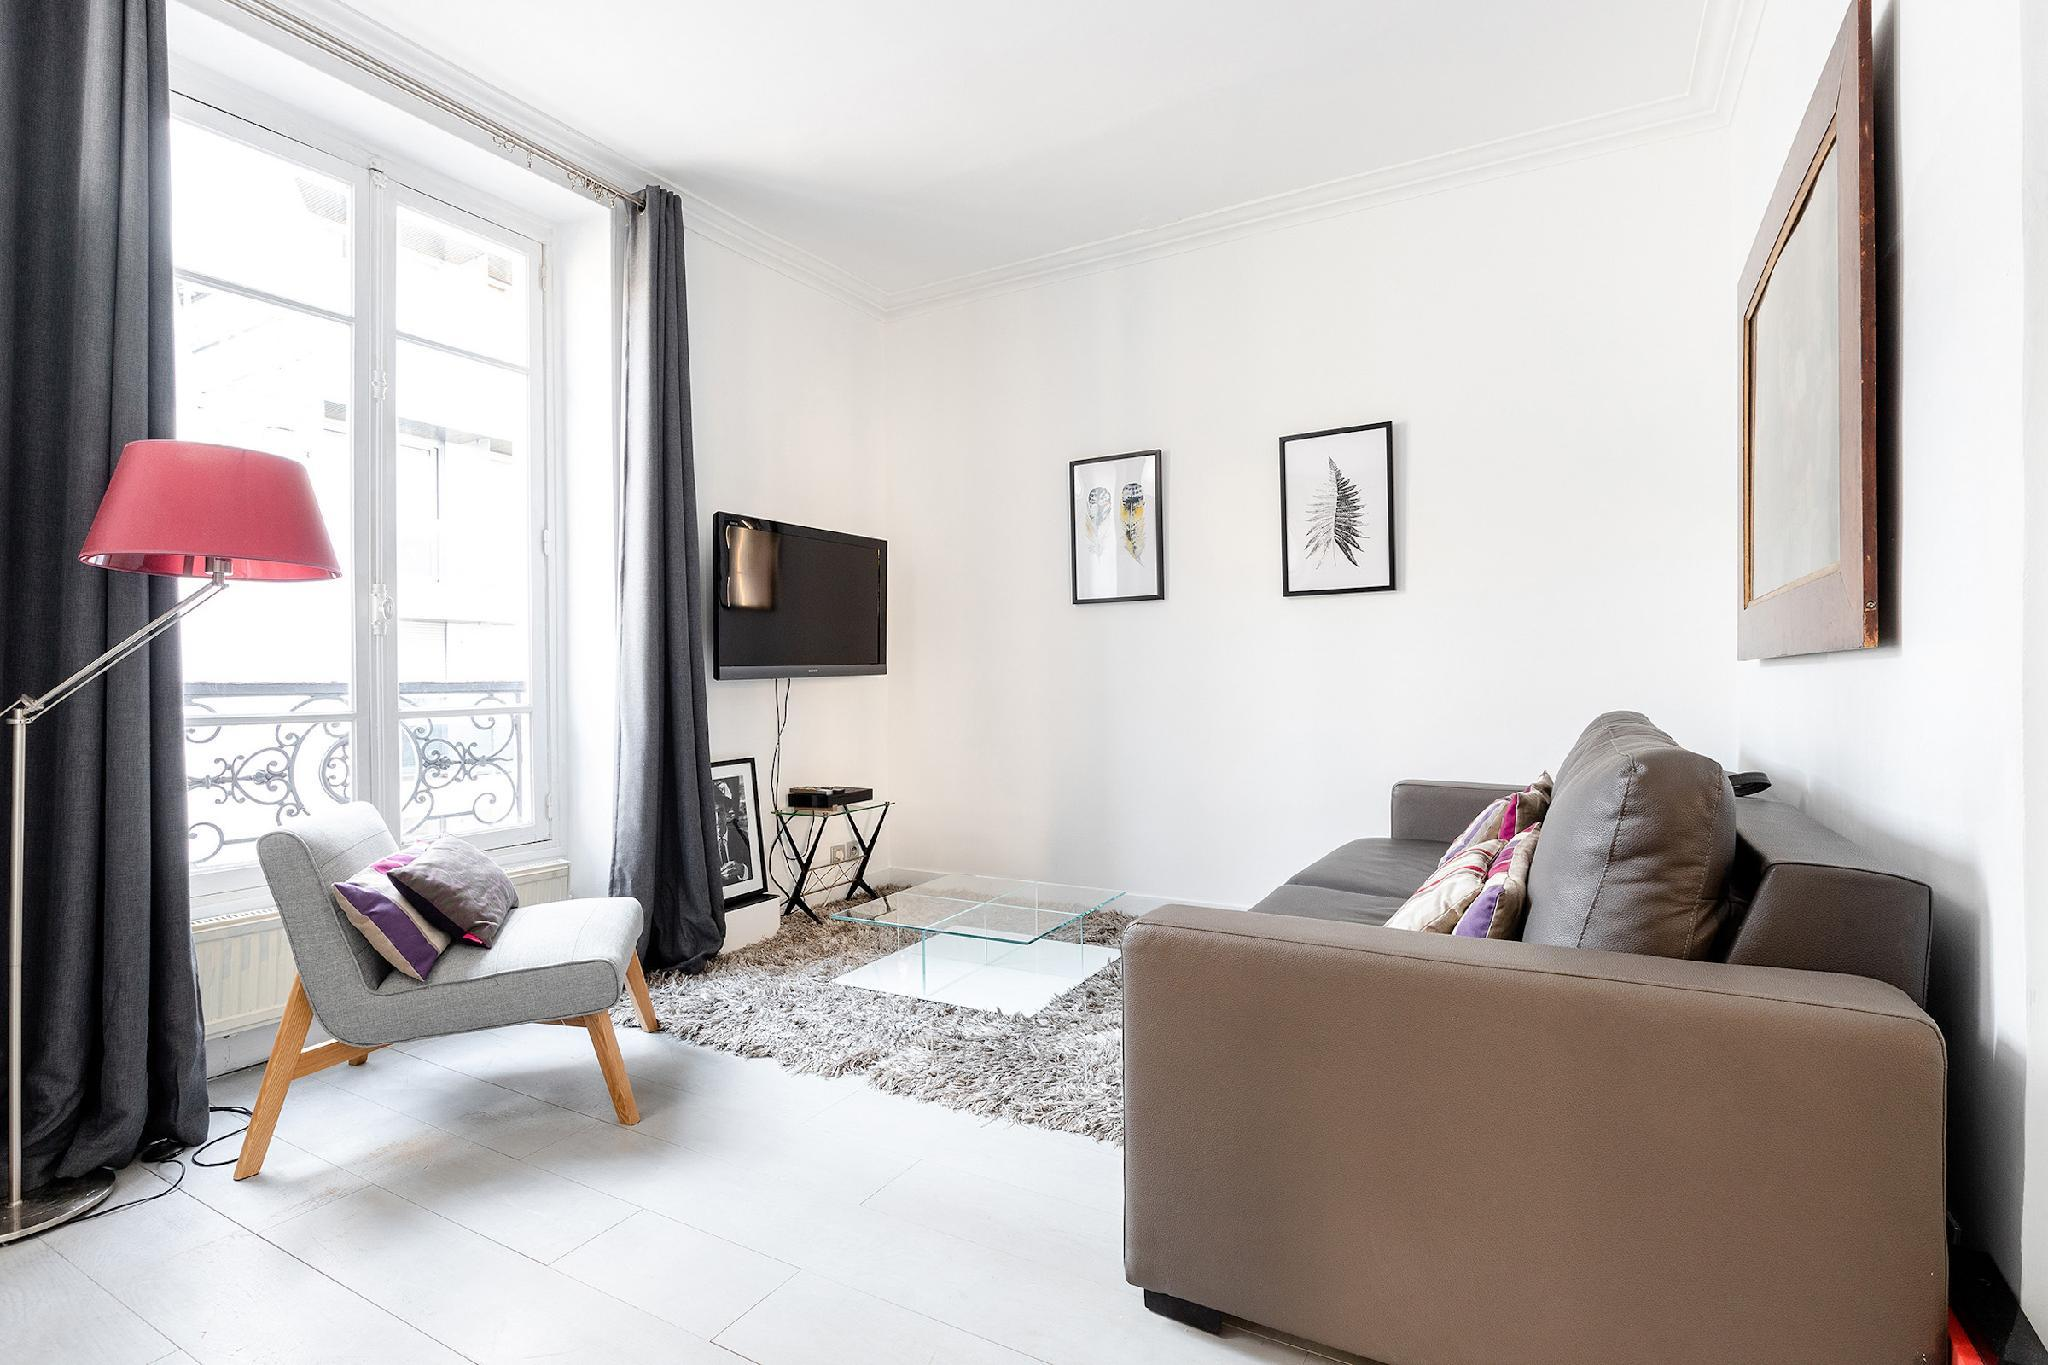 LOVELY 1BR - THE HEART OF PARIS-EIFFEL TOWER VIEW!